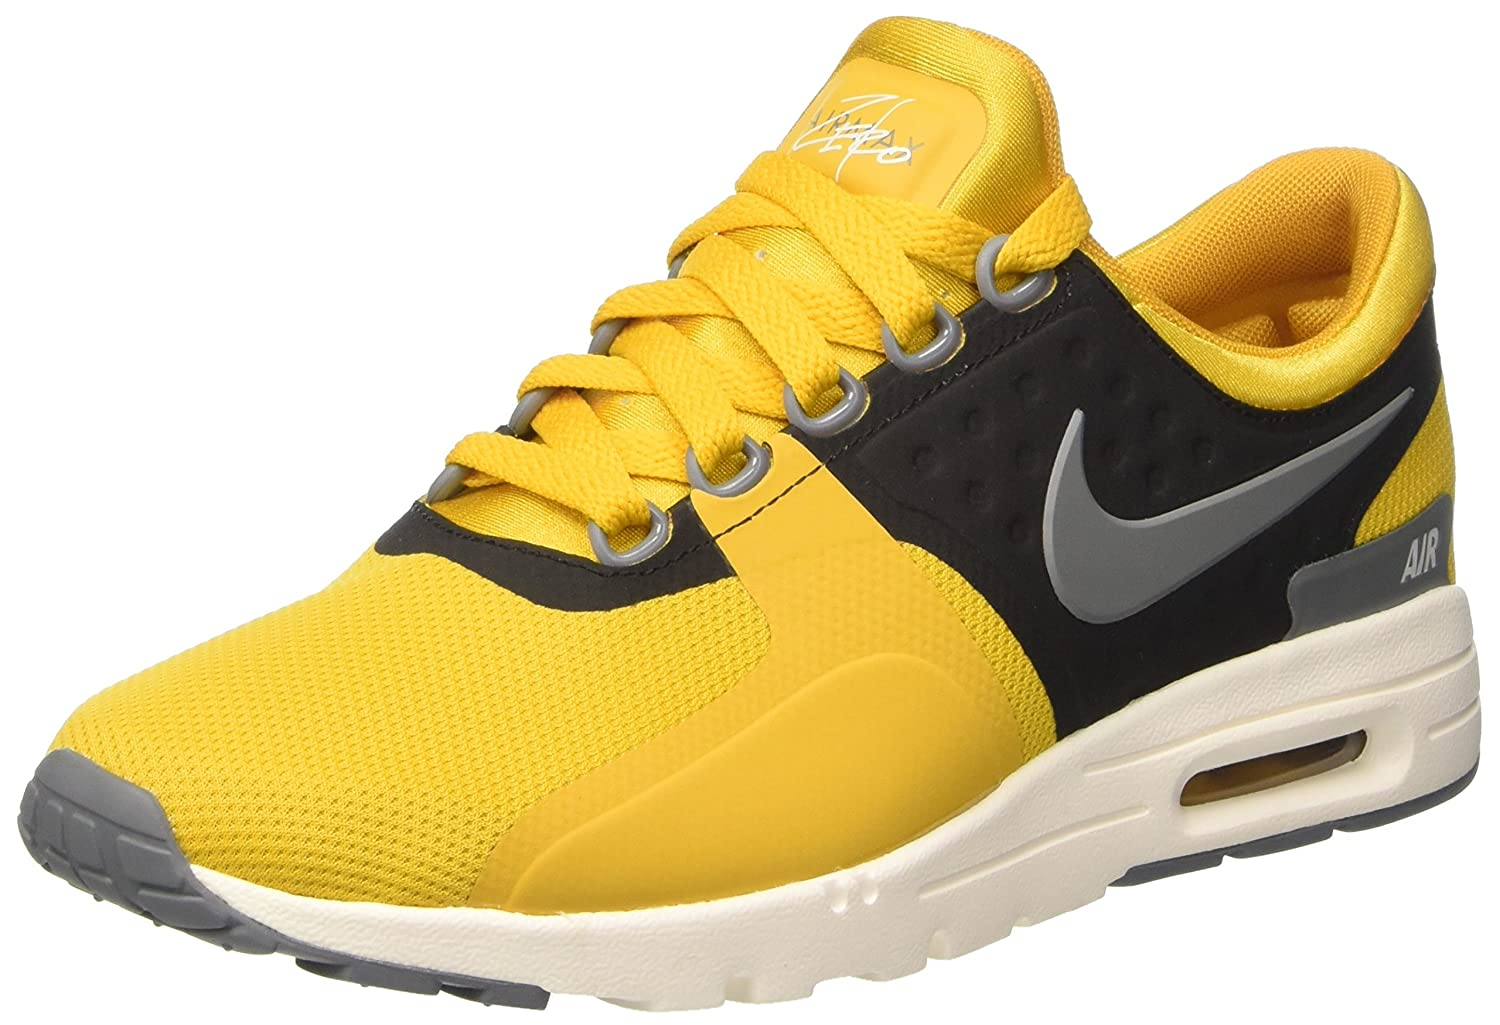 NIKE Women's Air Max Zero Running Shoe B01MR4MIV8 6 M US|Gold Dart/Cool Grey-ivory